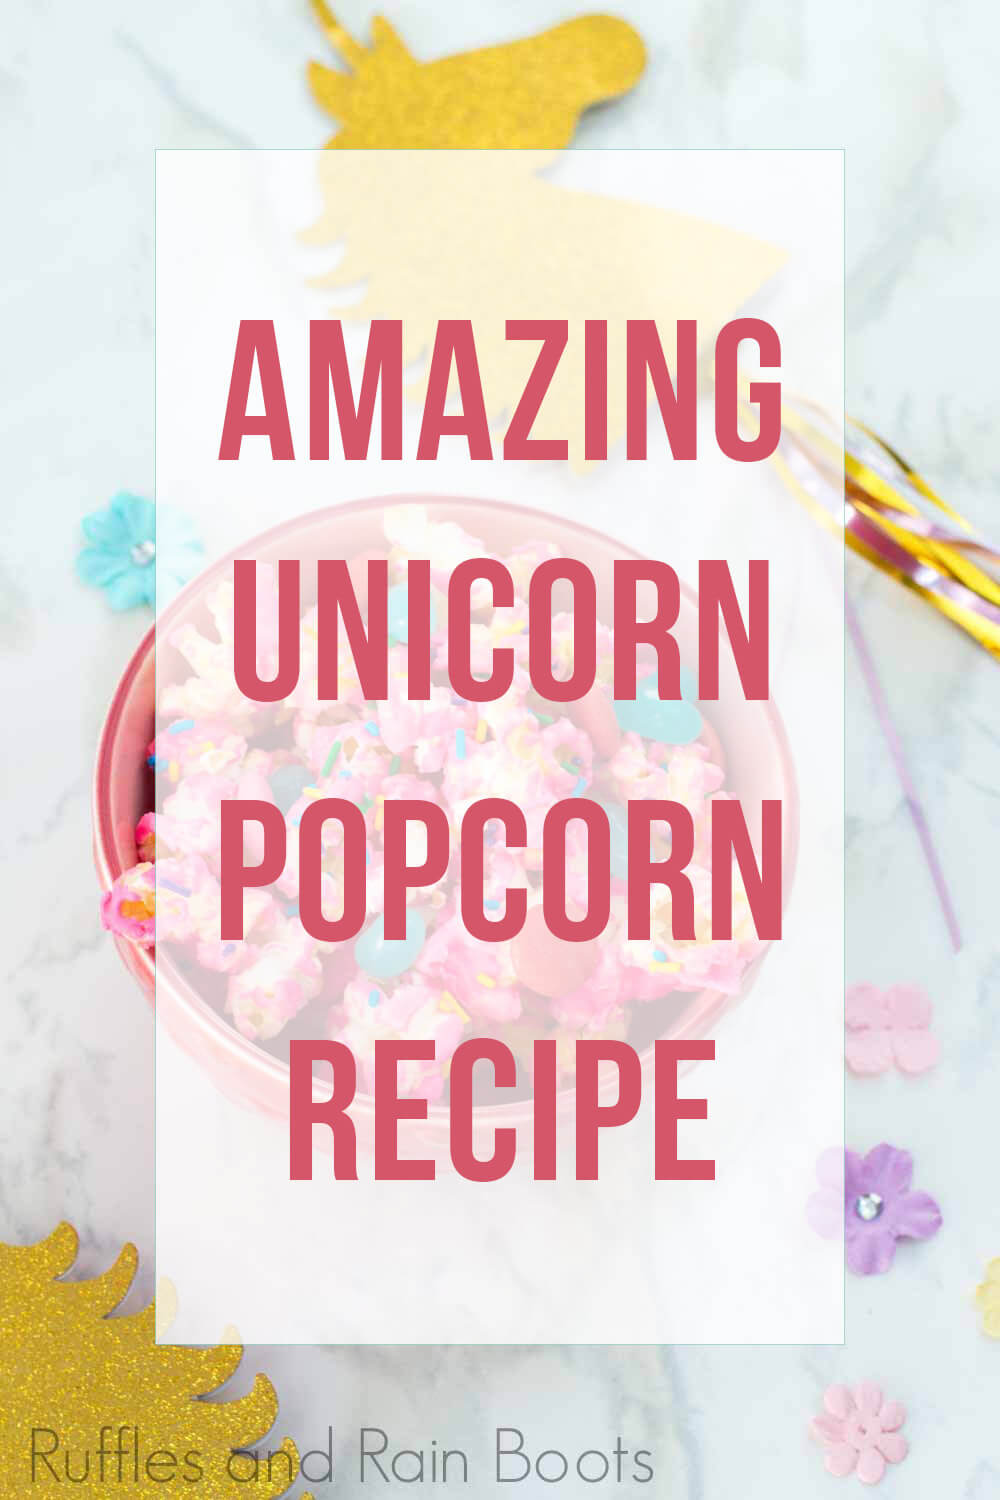 unicorn popcorn for unicorn party or playdate with text overlay which reads amazing unicorn popcorn recipe